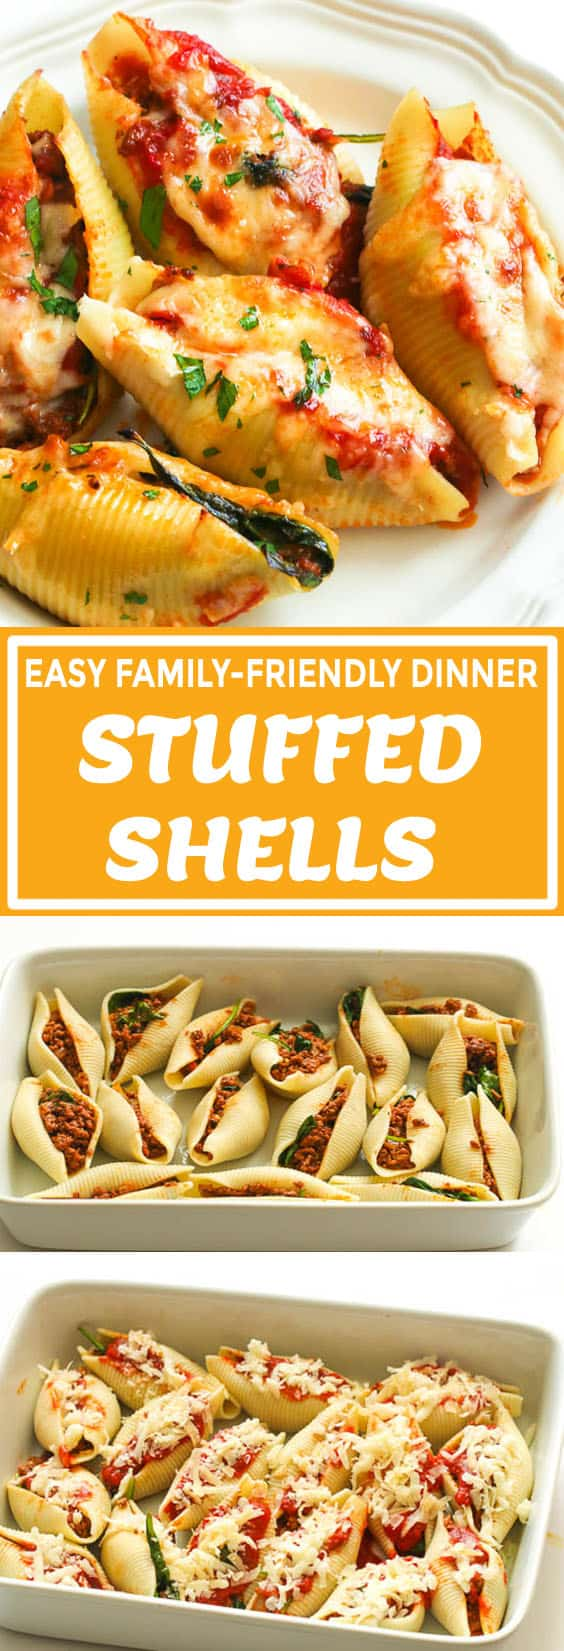 Stuffed Shells with Meat